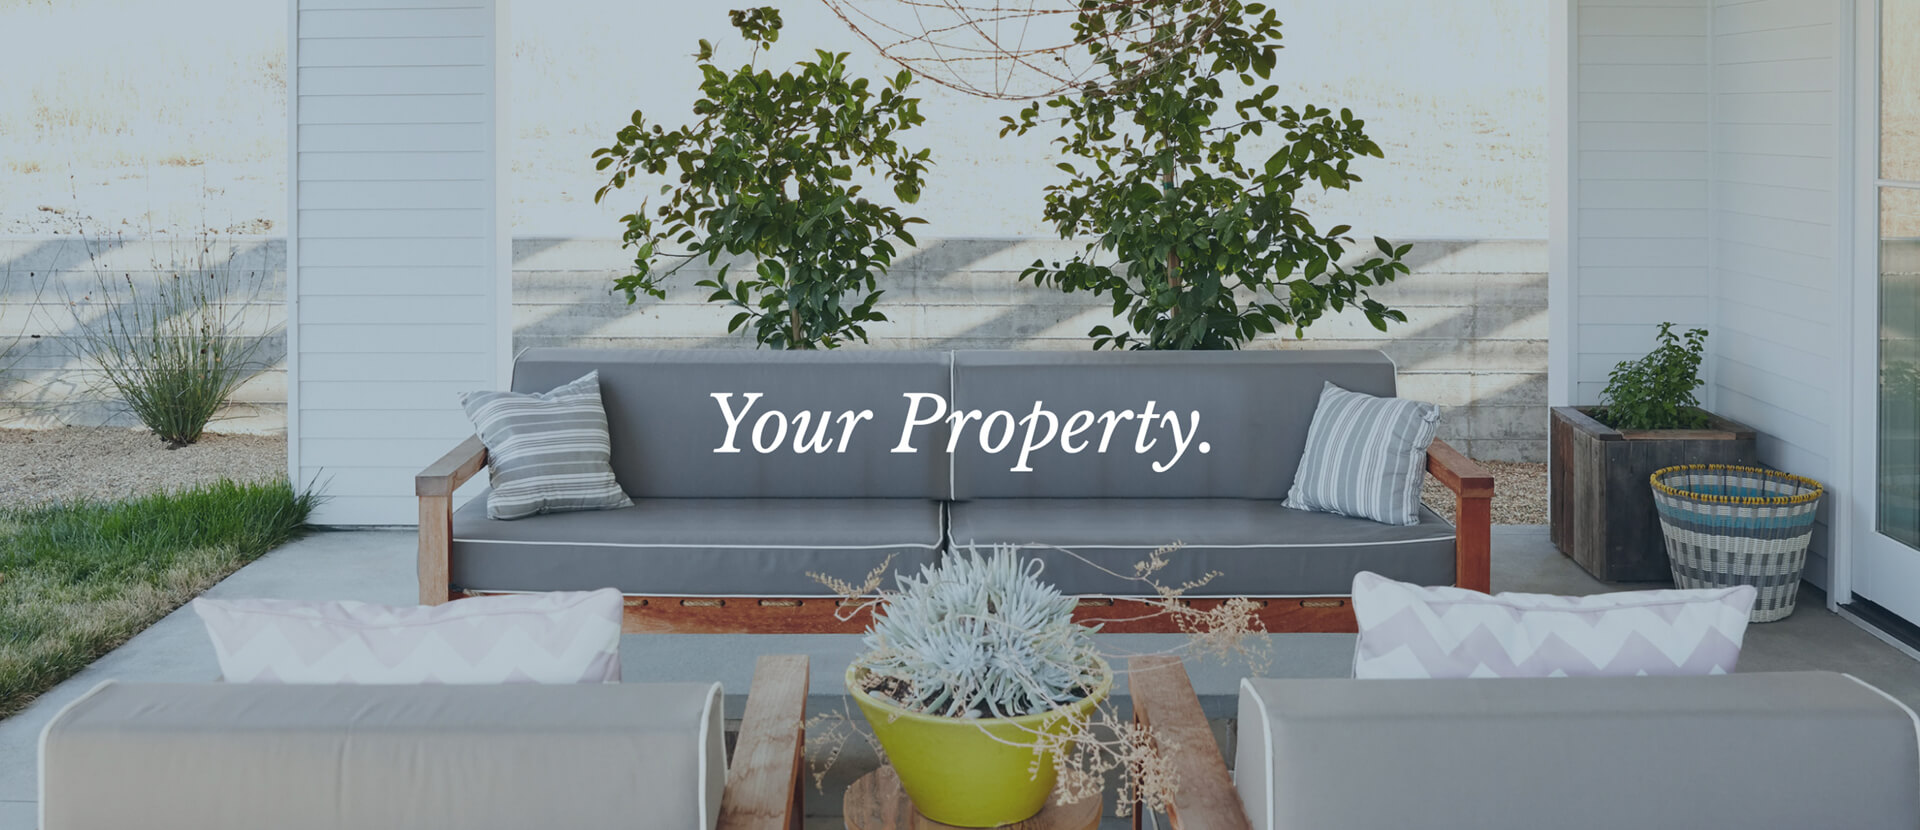 Your Property Banner